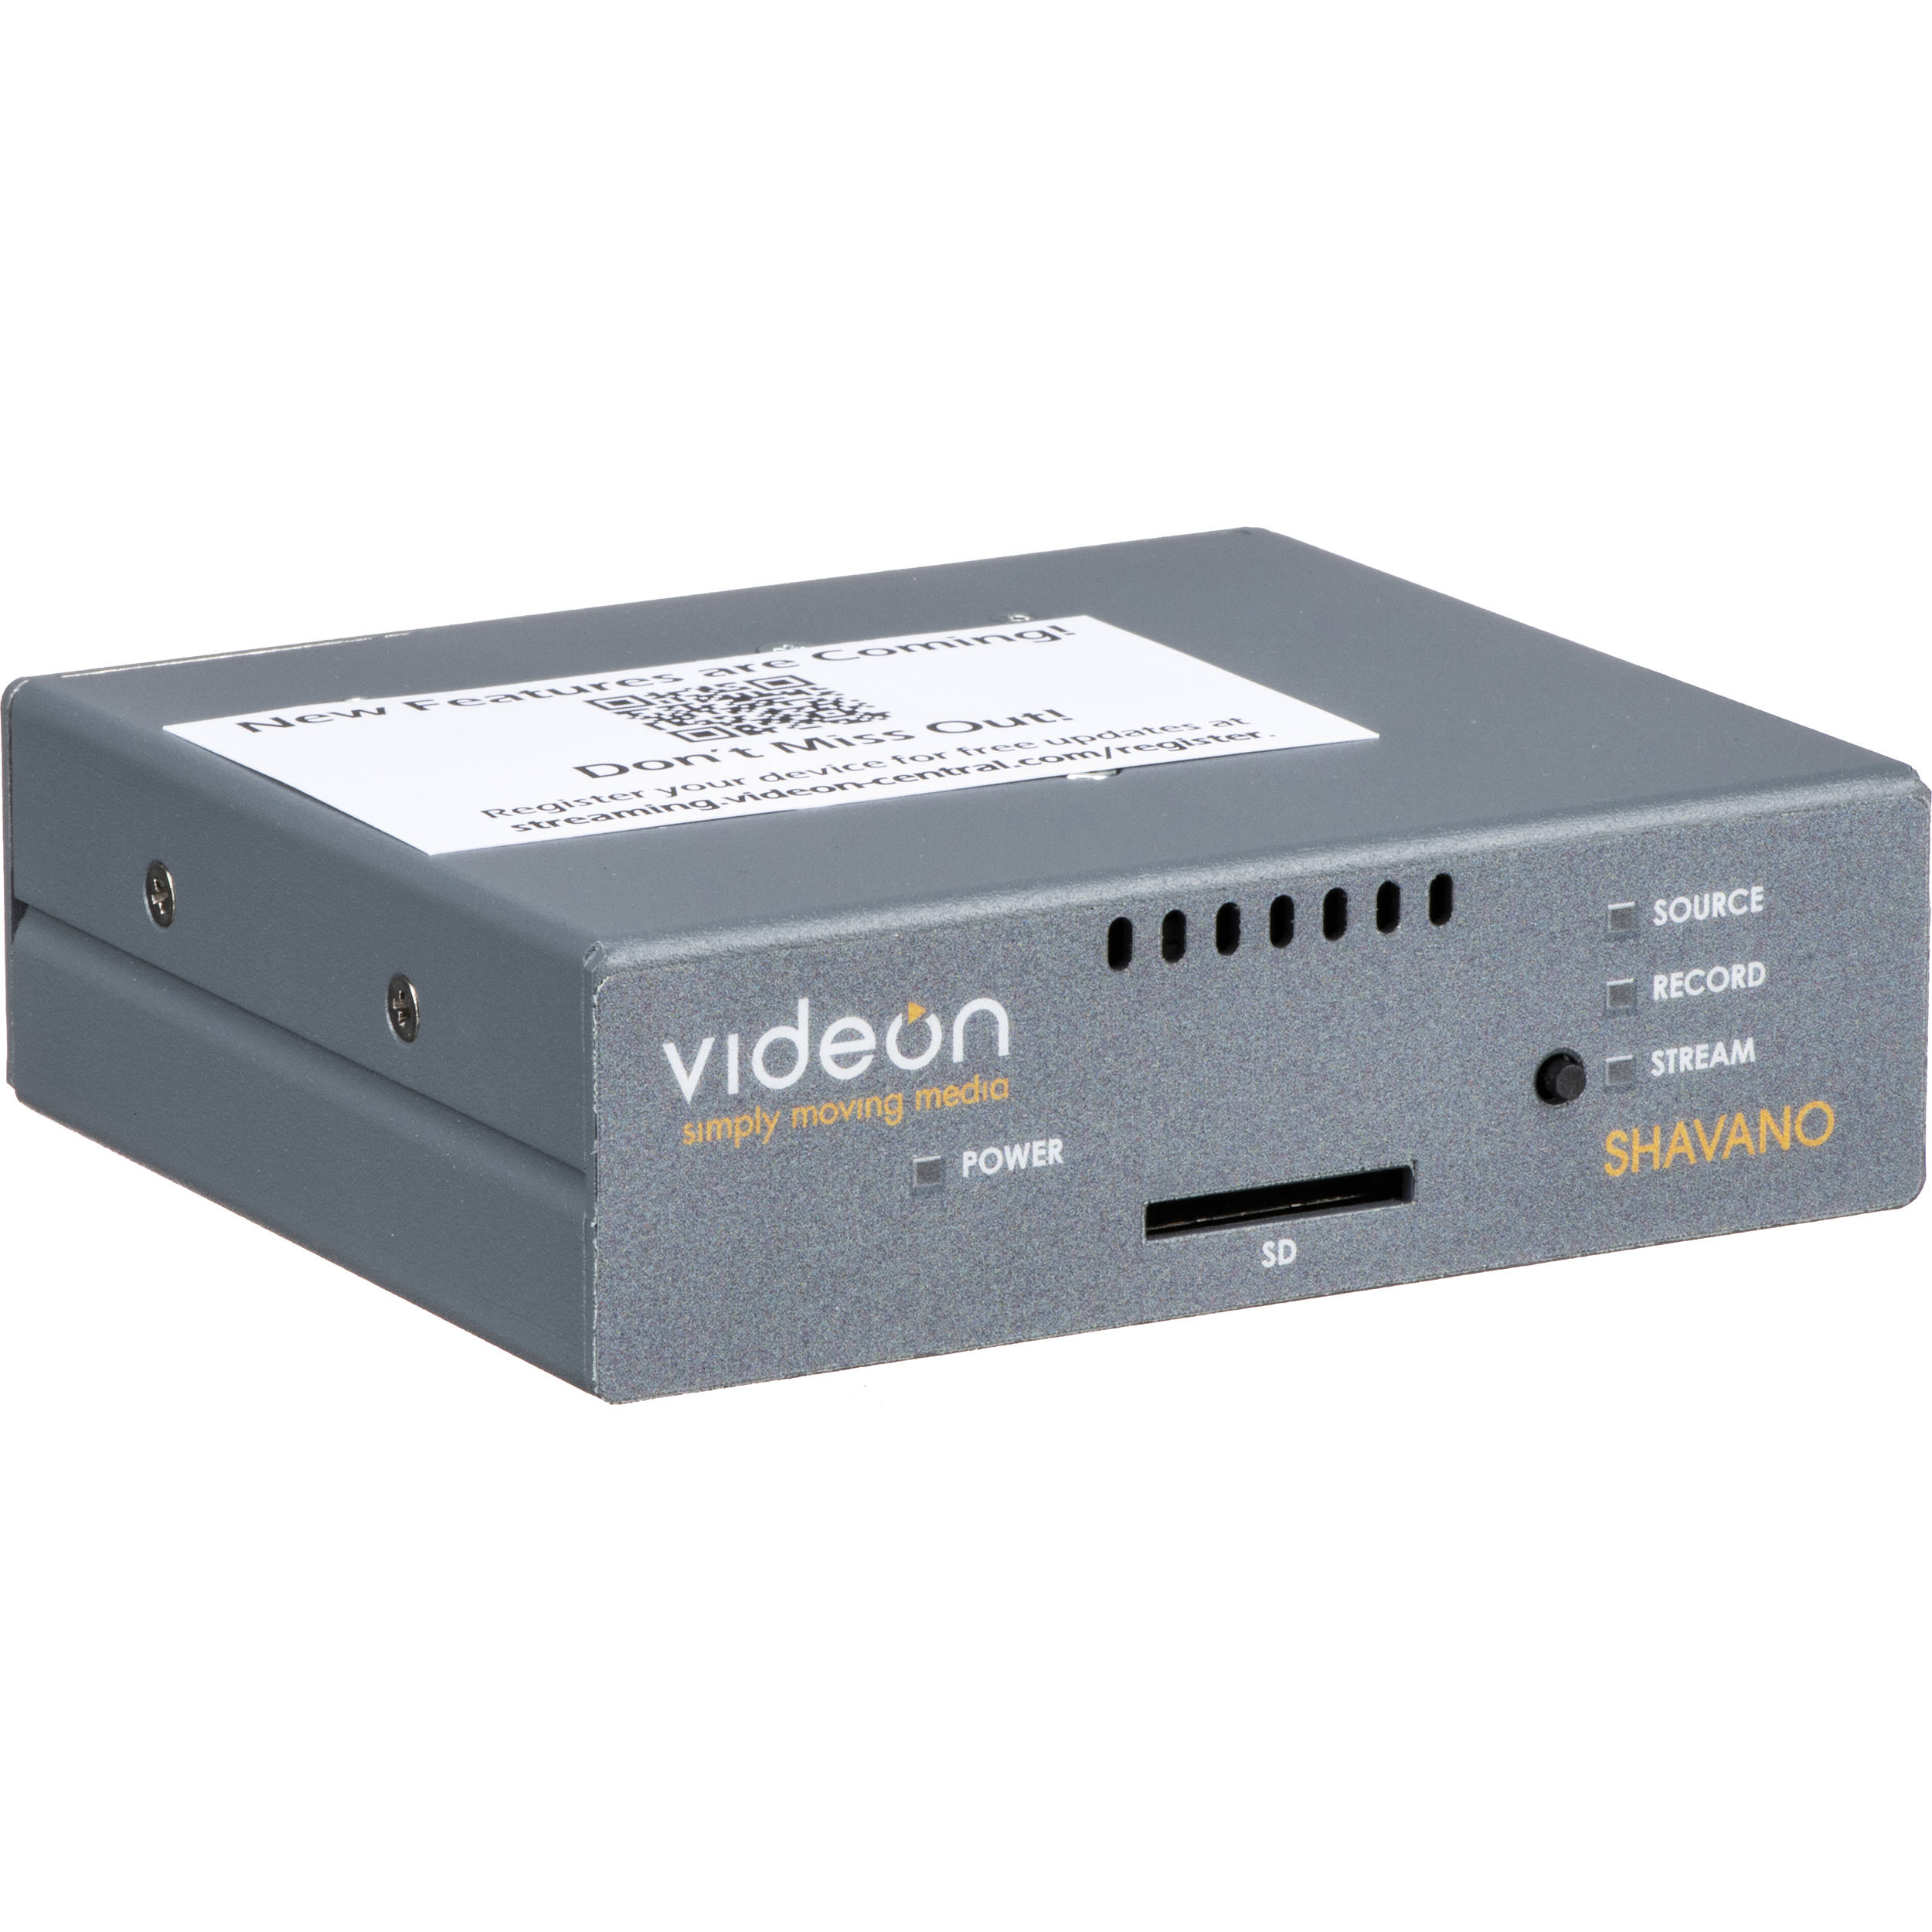 Https C Product 1371828 Reg Electronic Watchdog Bit Stream Alpha Videon Vid 10004285 Shavano 4k 1381600